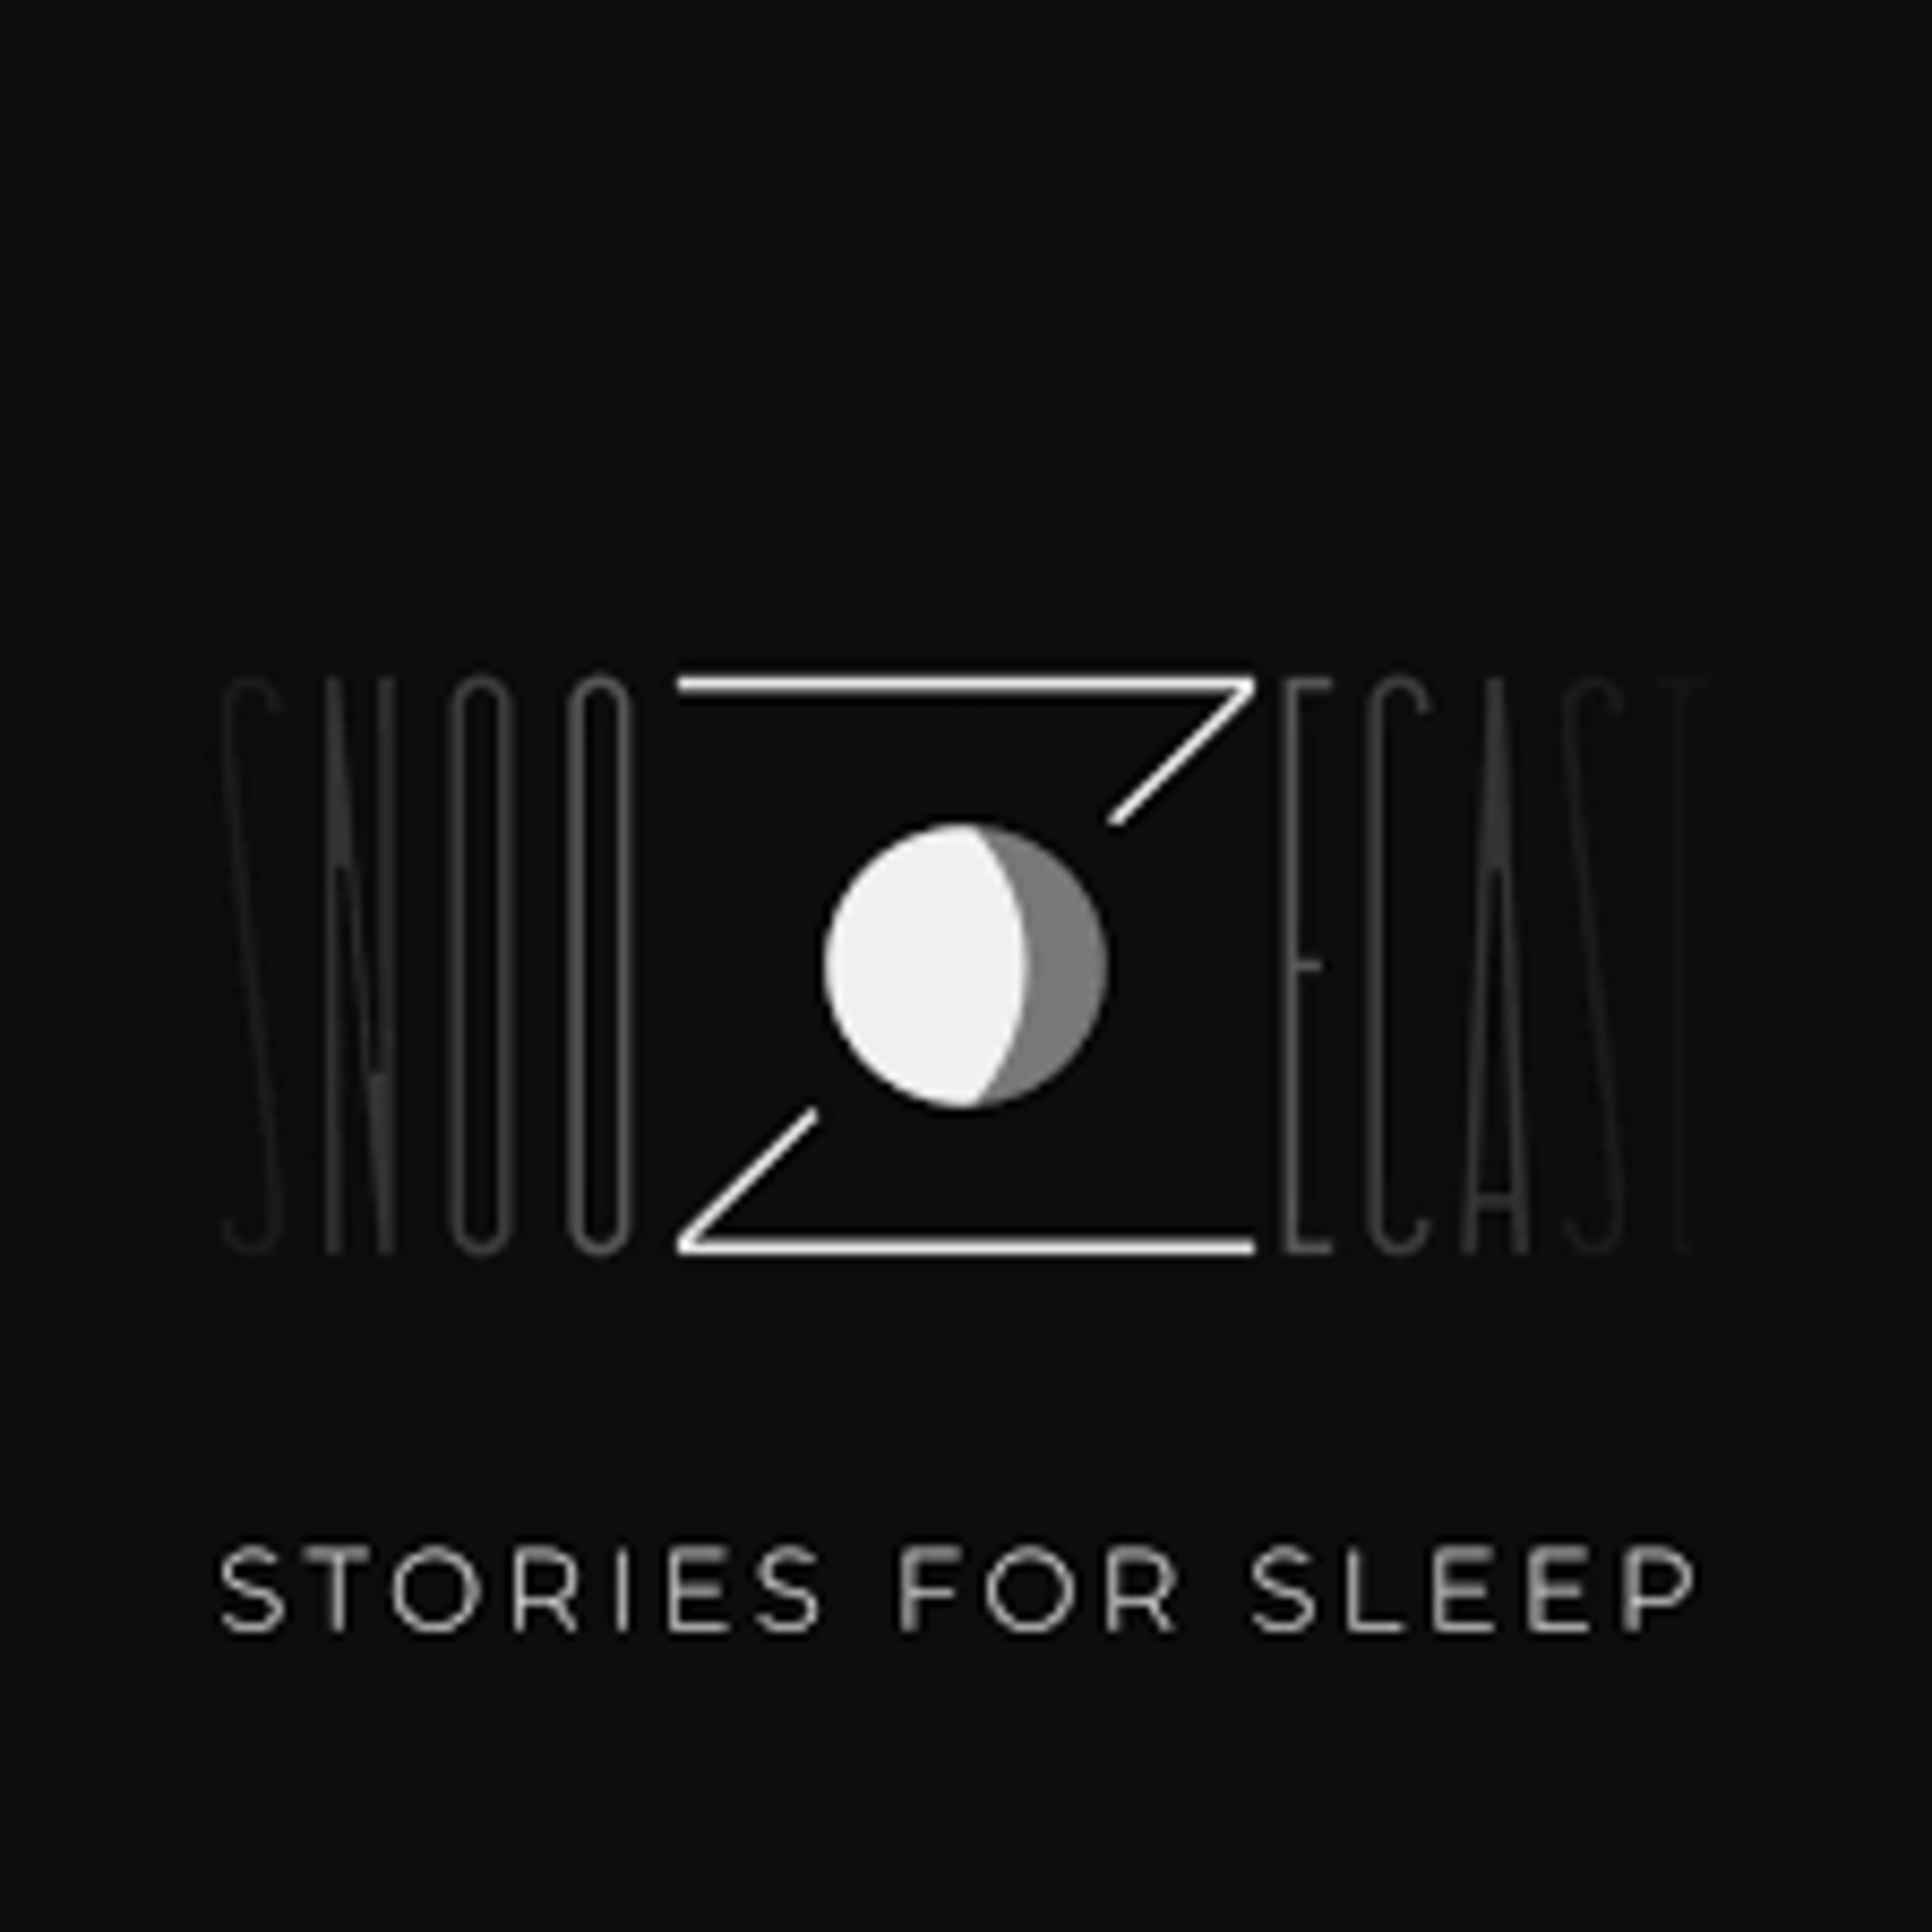 A Sleep Story from the SNOOZECAST Podcast: Listen for Soothing Sleep Stories 😴